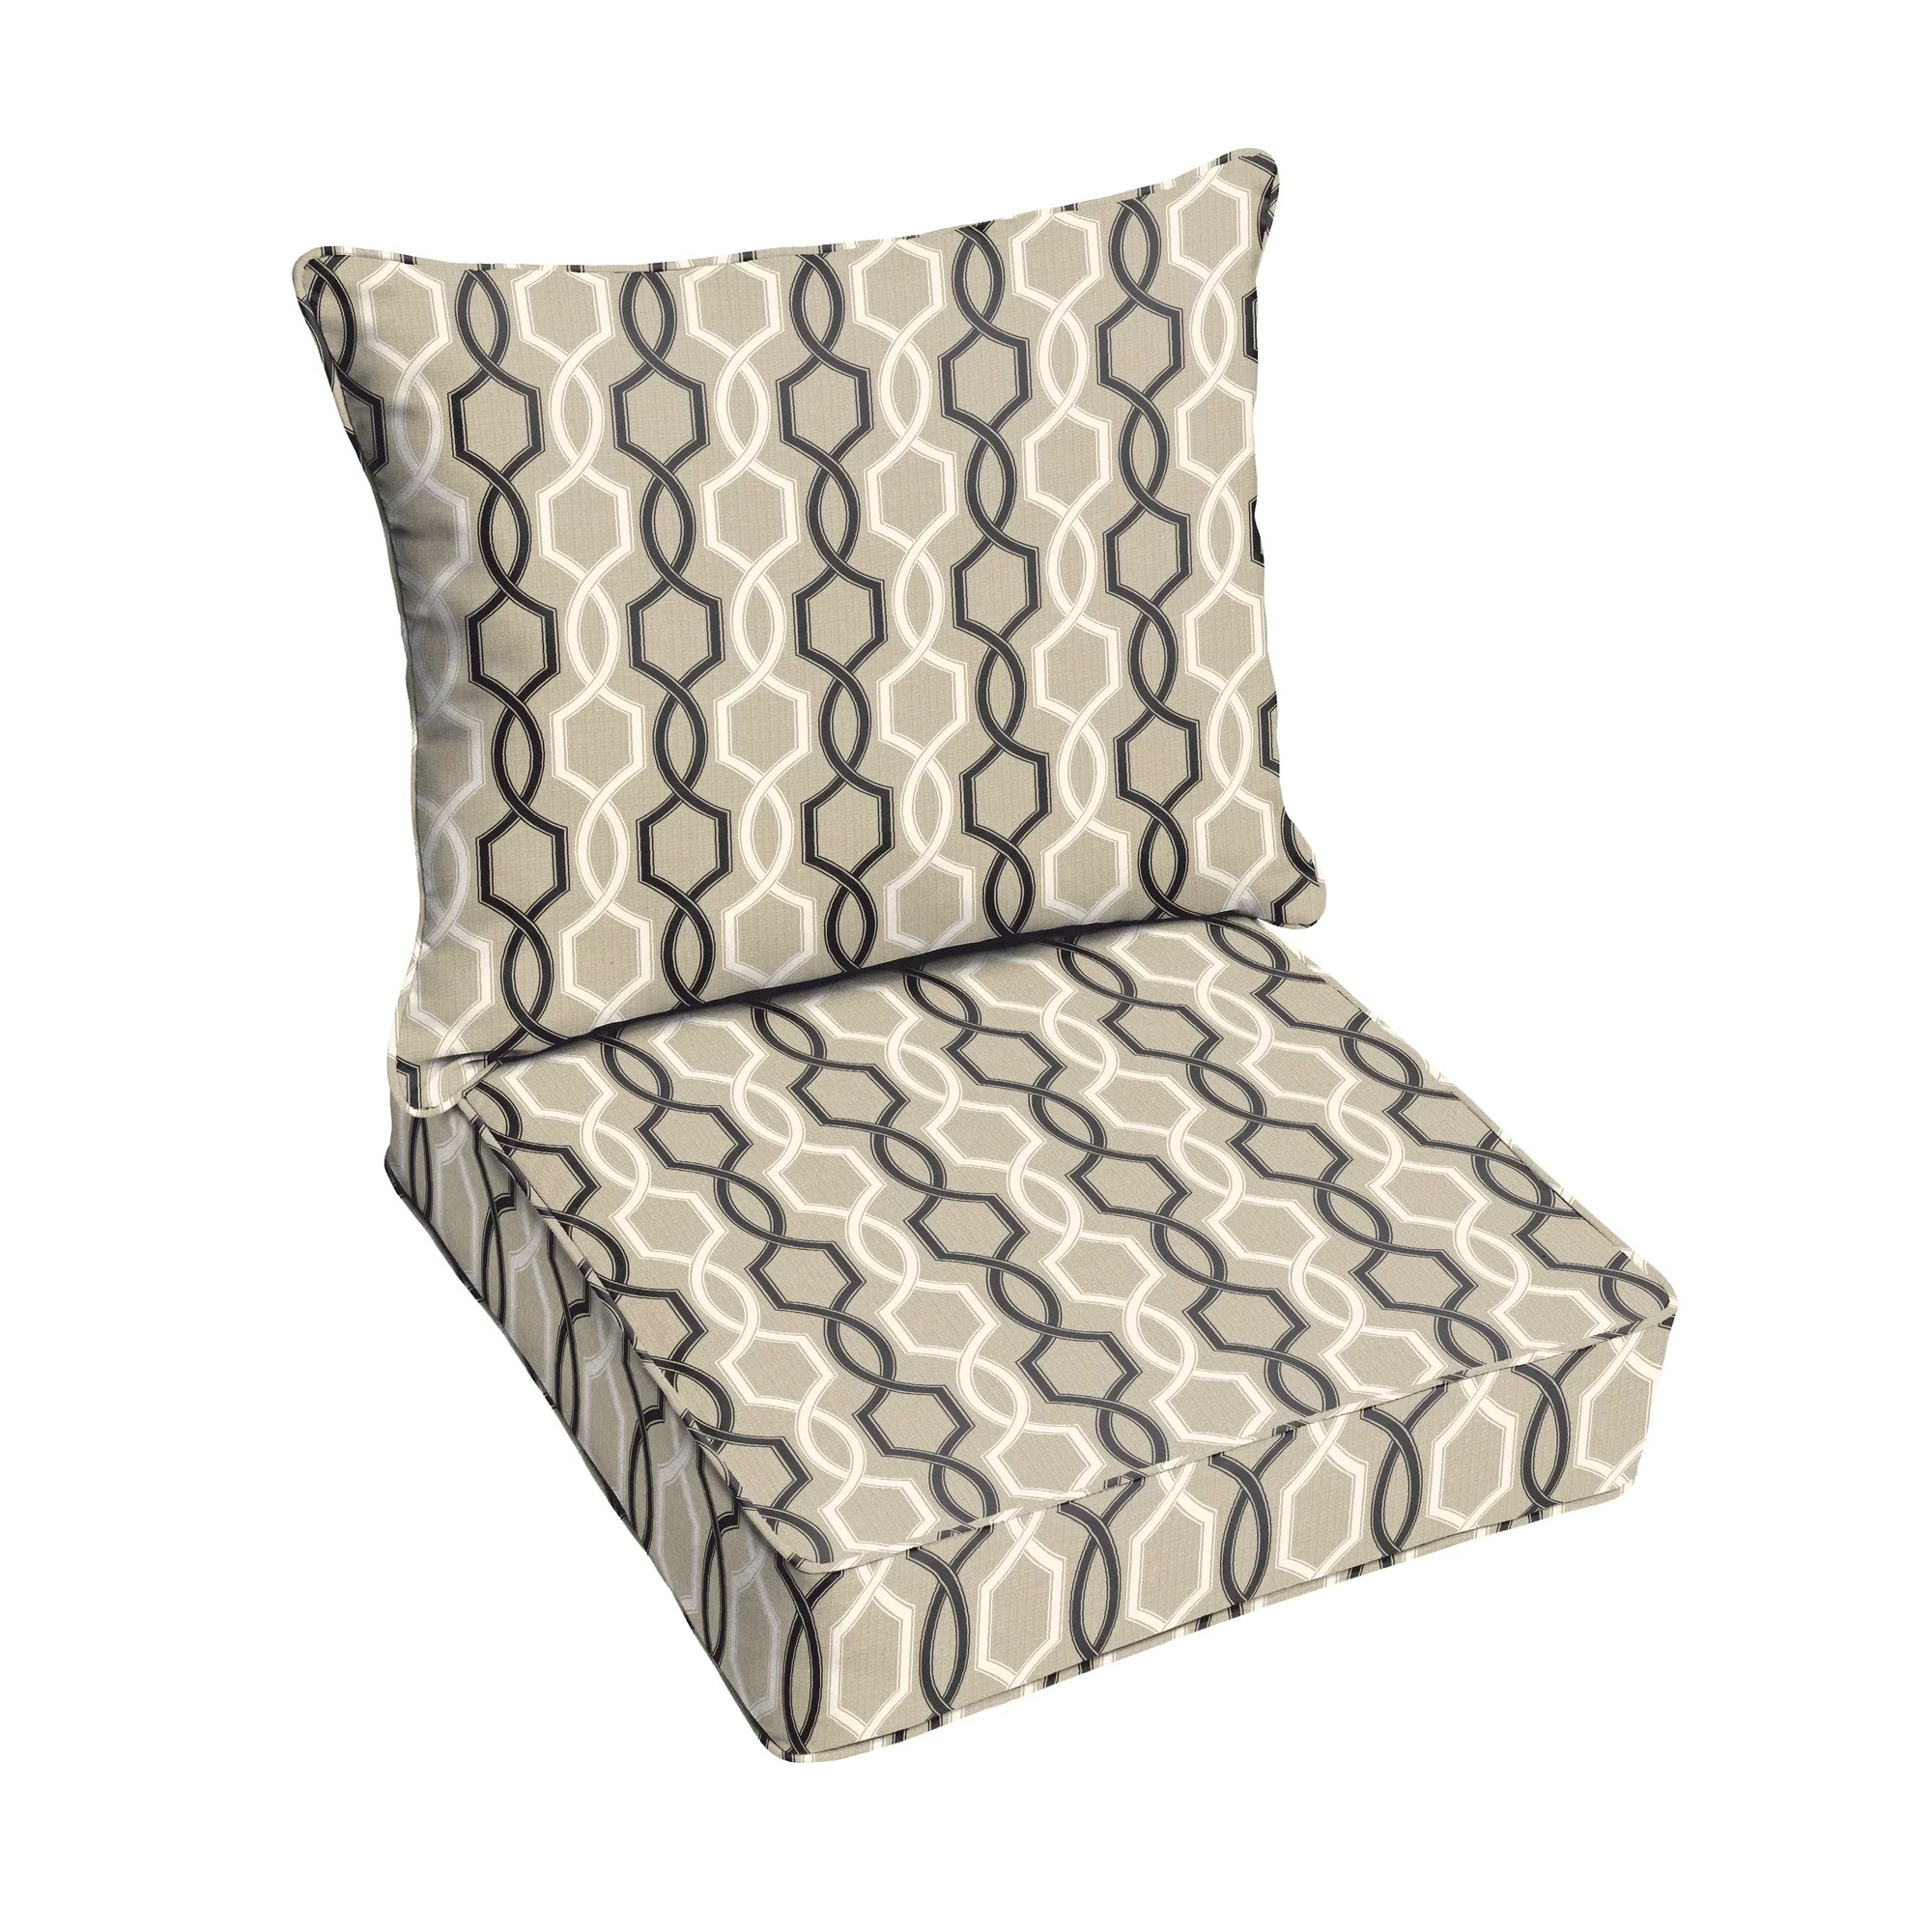 1 piece patio chair cushions teak lounger chairs darby home co bank 2 outdoor sunbrella dining